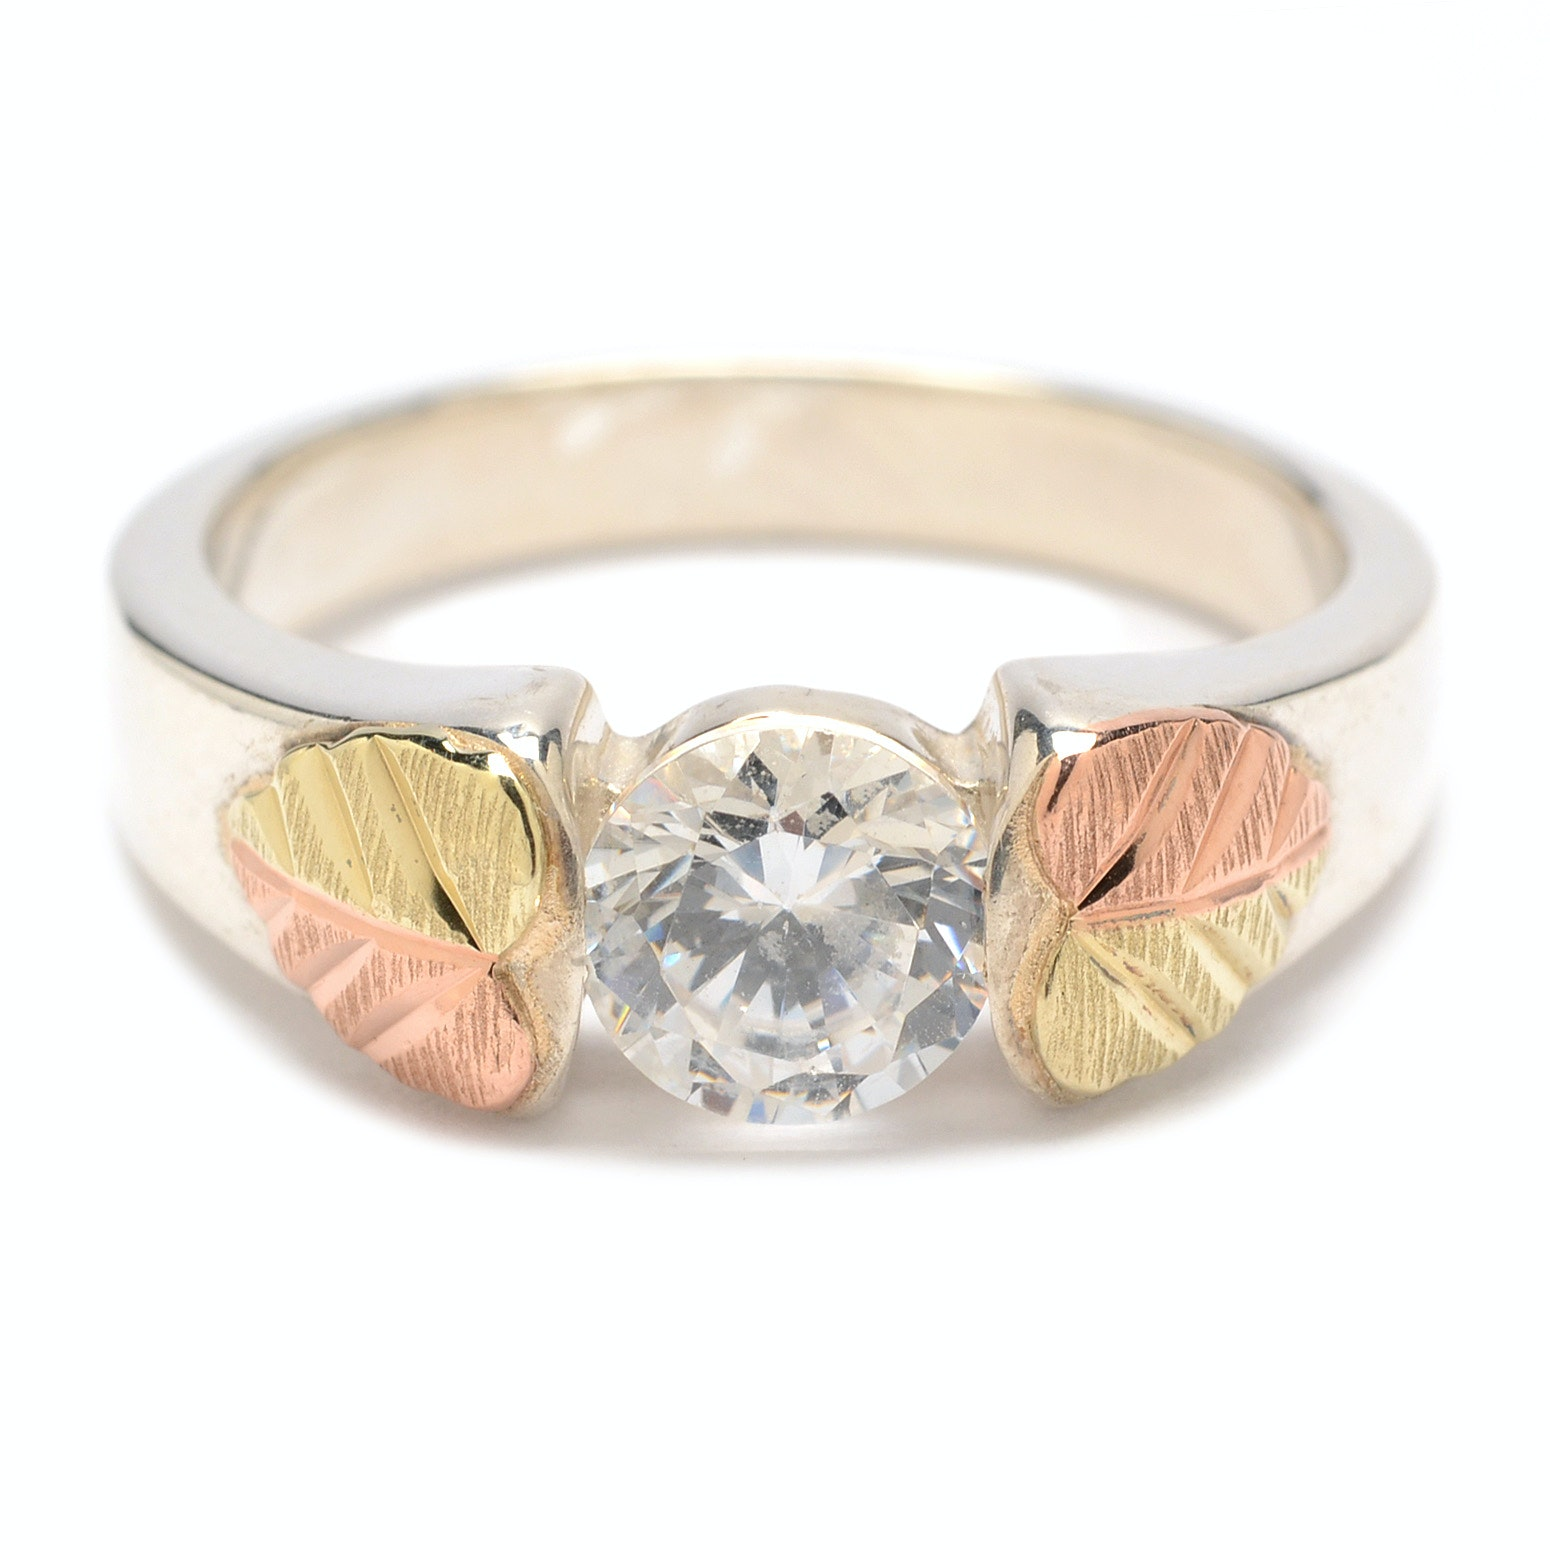 Sterling Silver Cubic Zirconia Ring with 10K Yellow and Rose Gold Accents